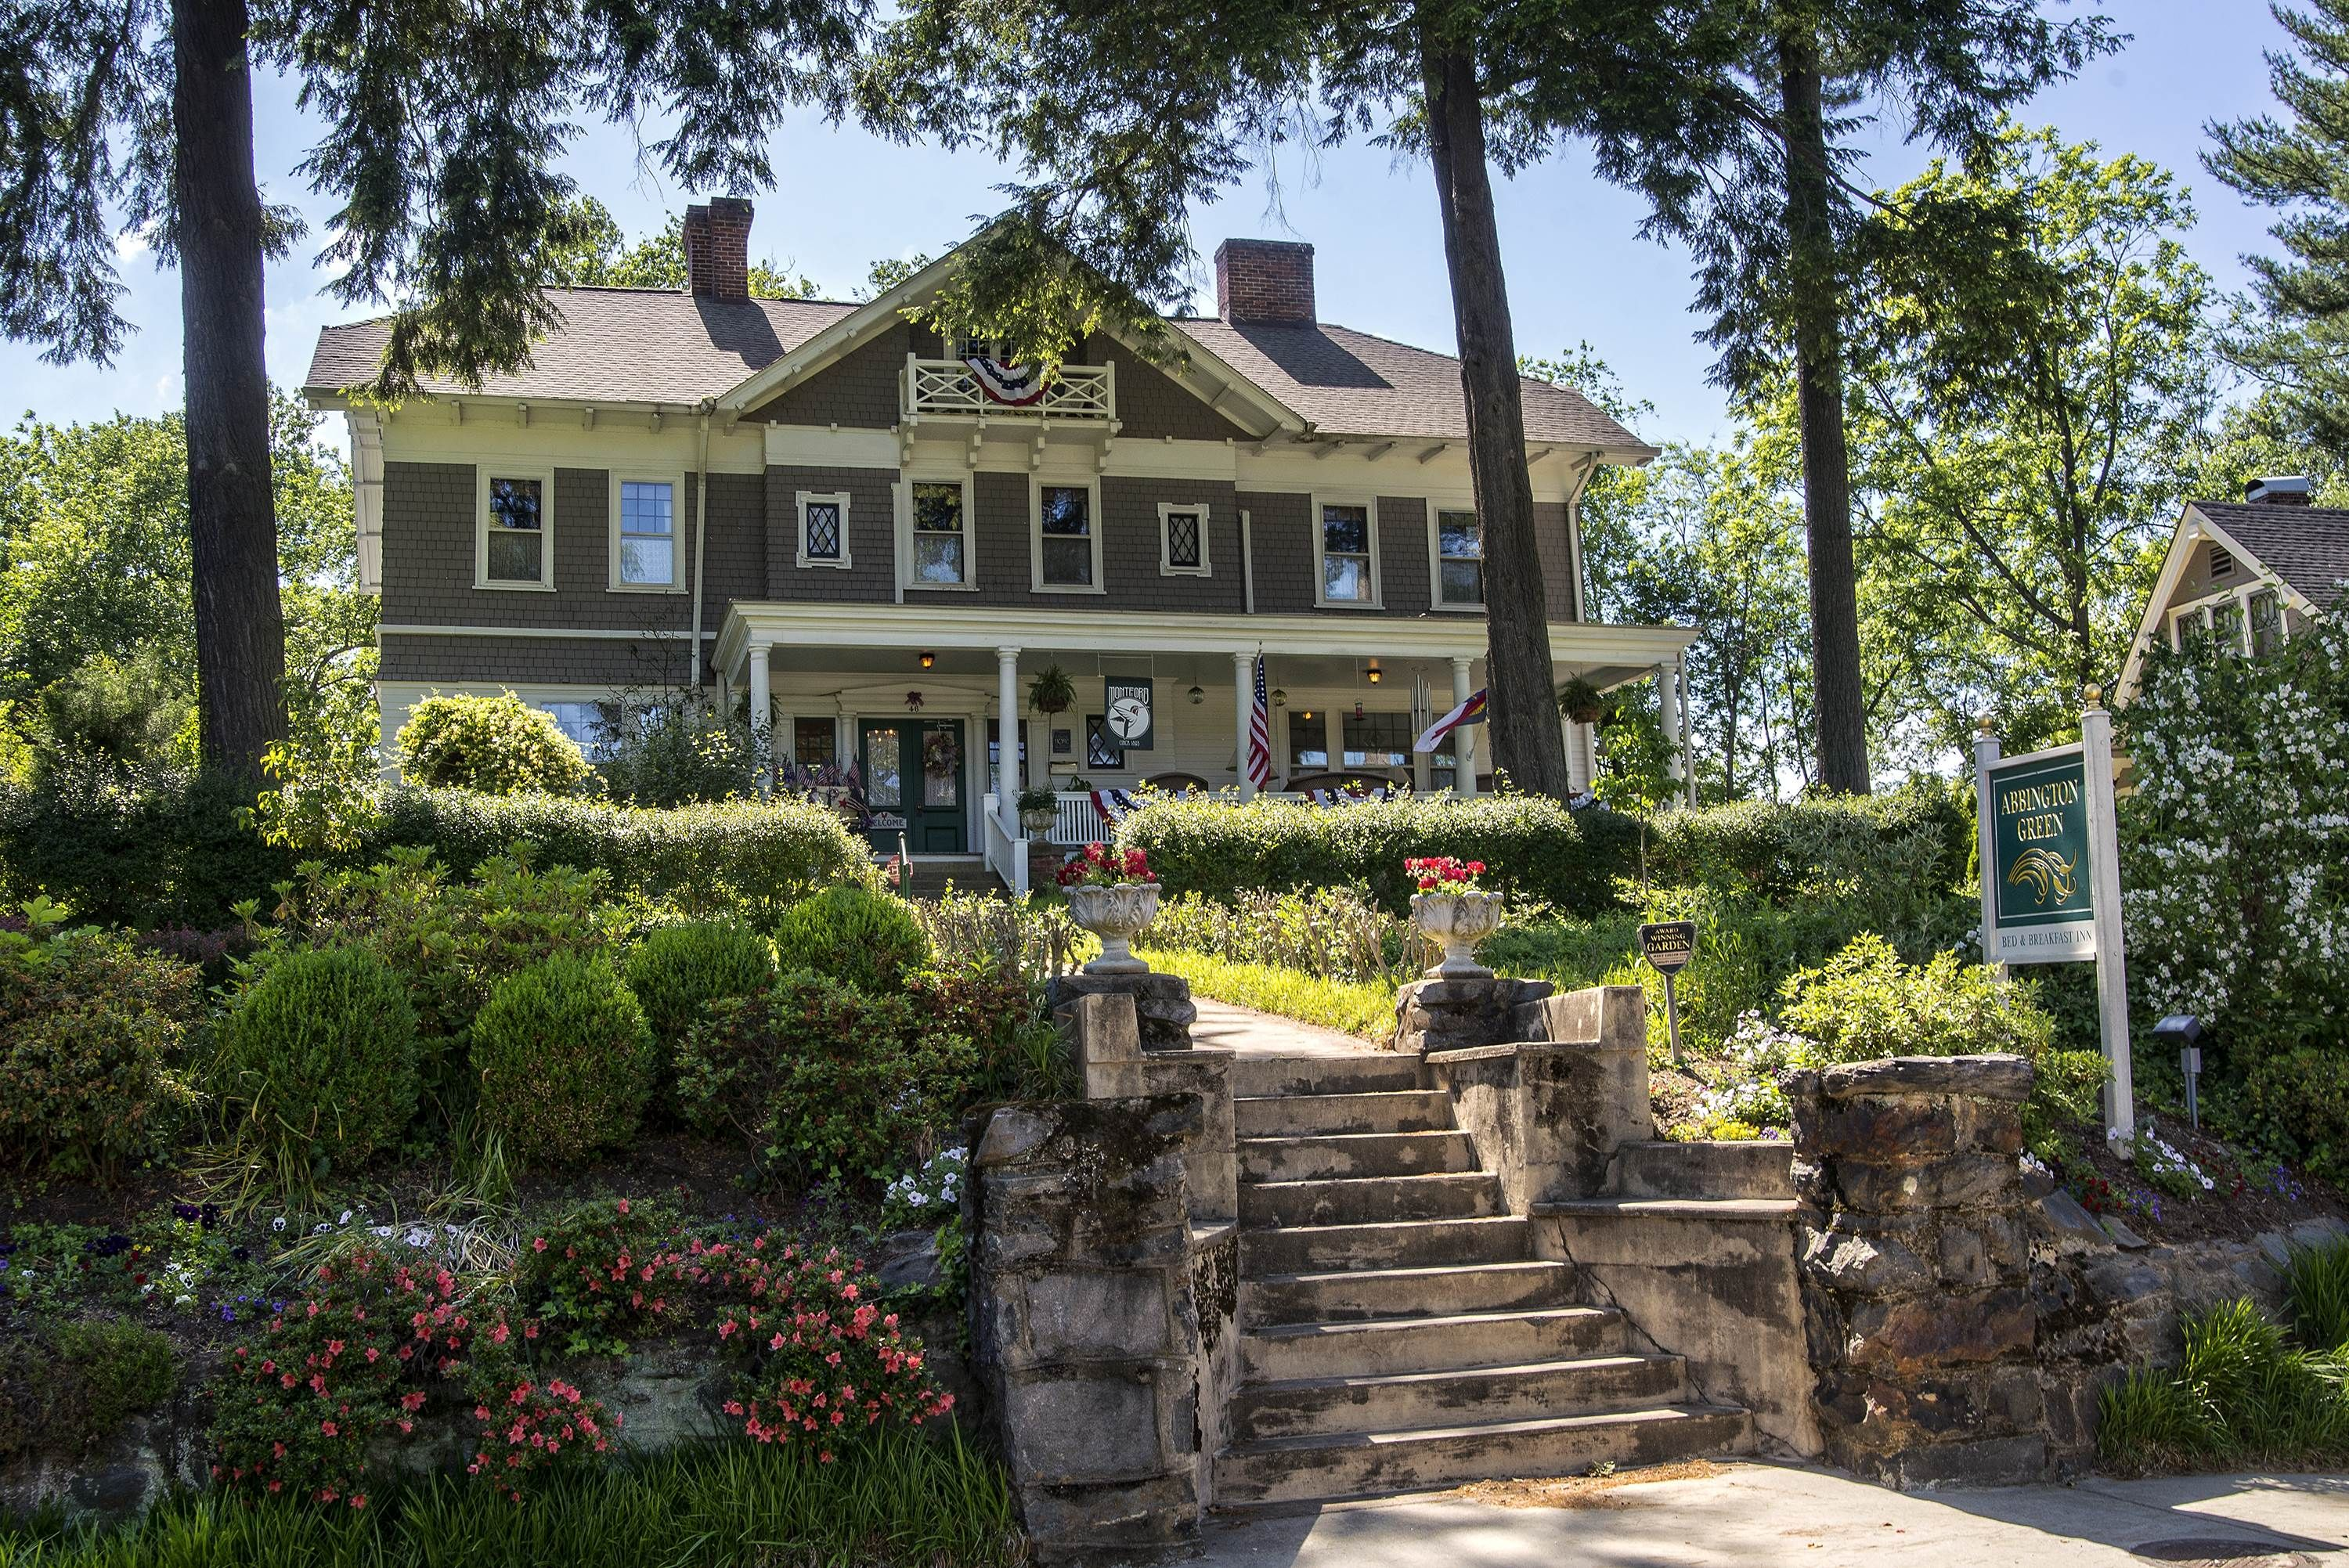 Top U.S. B&Bs of 2015 | Bed and Breakfast